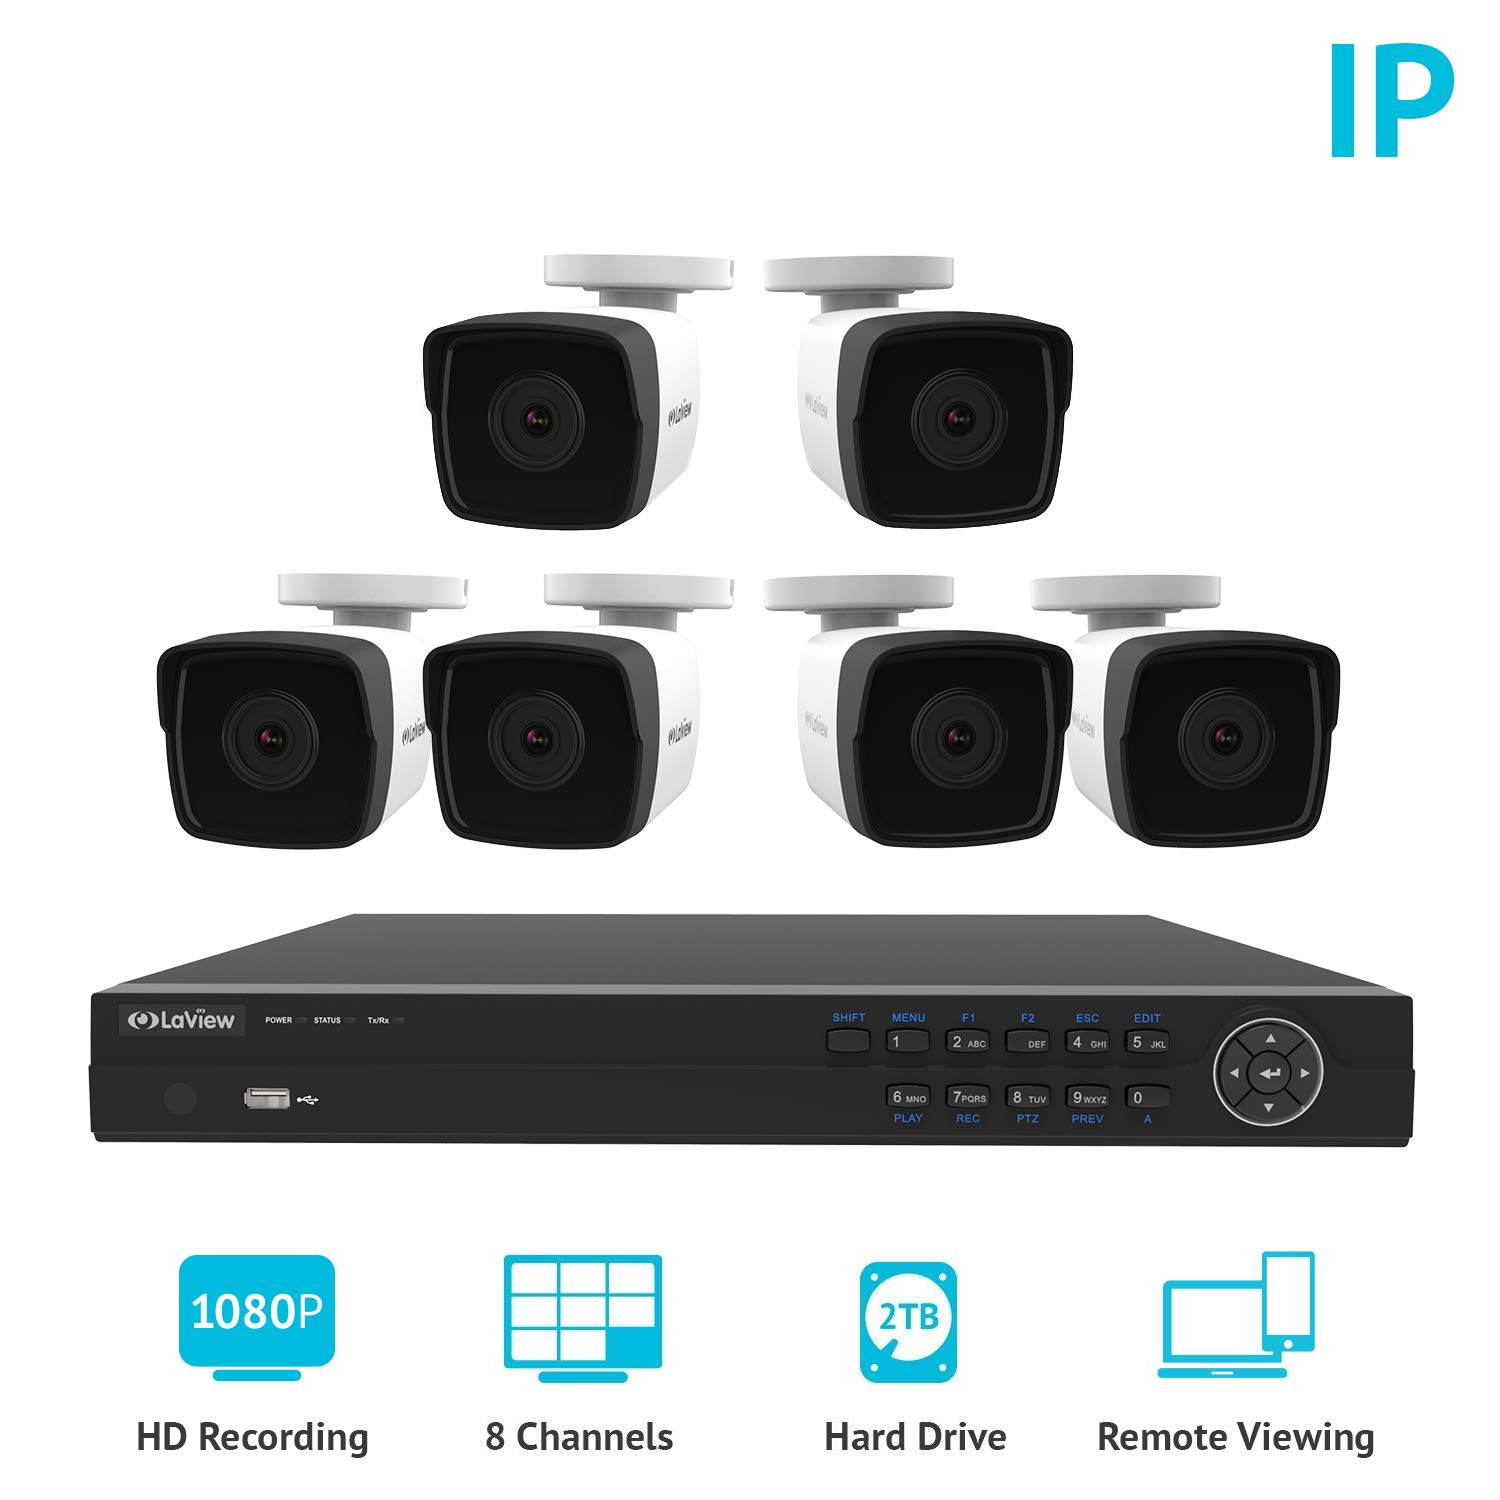 a place to call home complete series 4 camera advance pro series cctv installation cctv Laview 1080p home security camera system, 8 channel NVR recorder with 2TB  hard drive, 6 bullet 1080p waterproof IP66 security system cameras,  indoor-outdoor ...